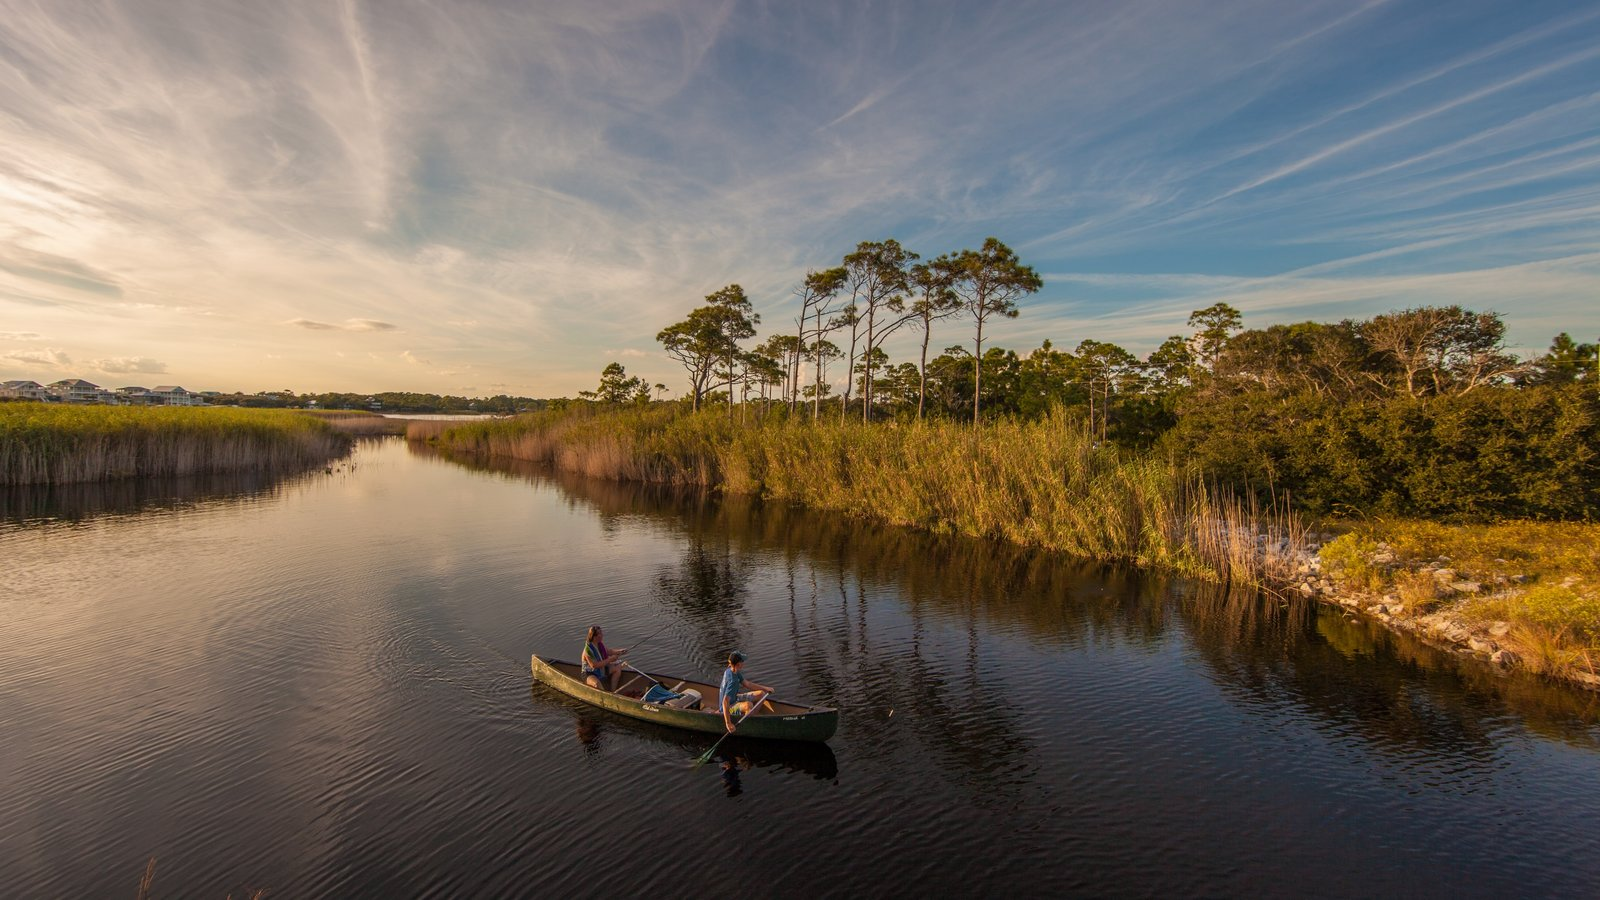 Grayton Beach State Park showing kayaking or canoeing and a river or creek